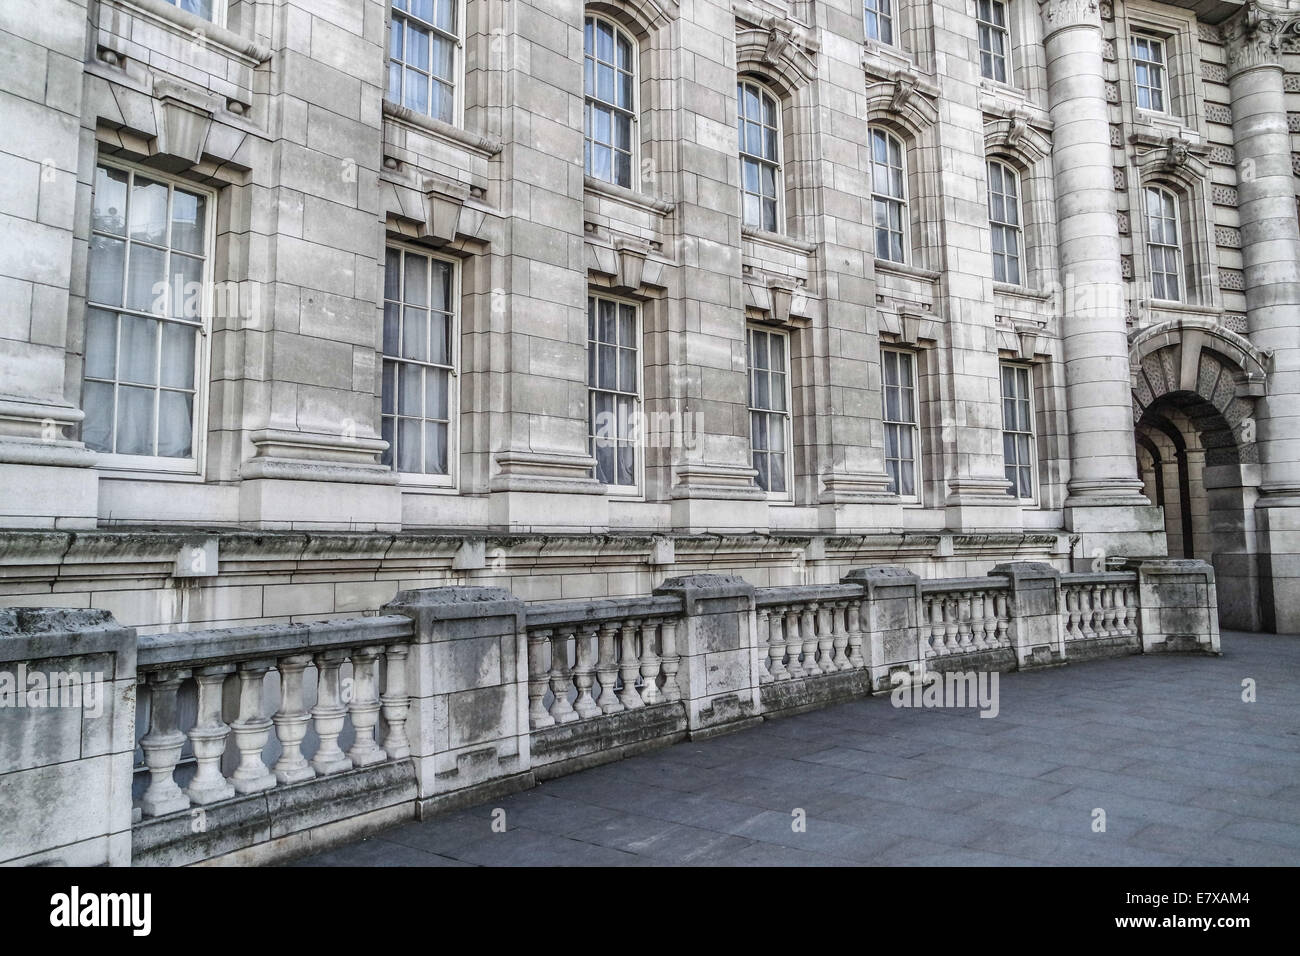 London Stone building classic architecture  windows - Stock Image